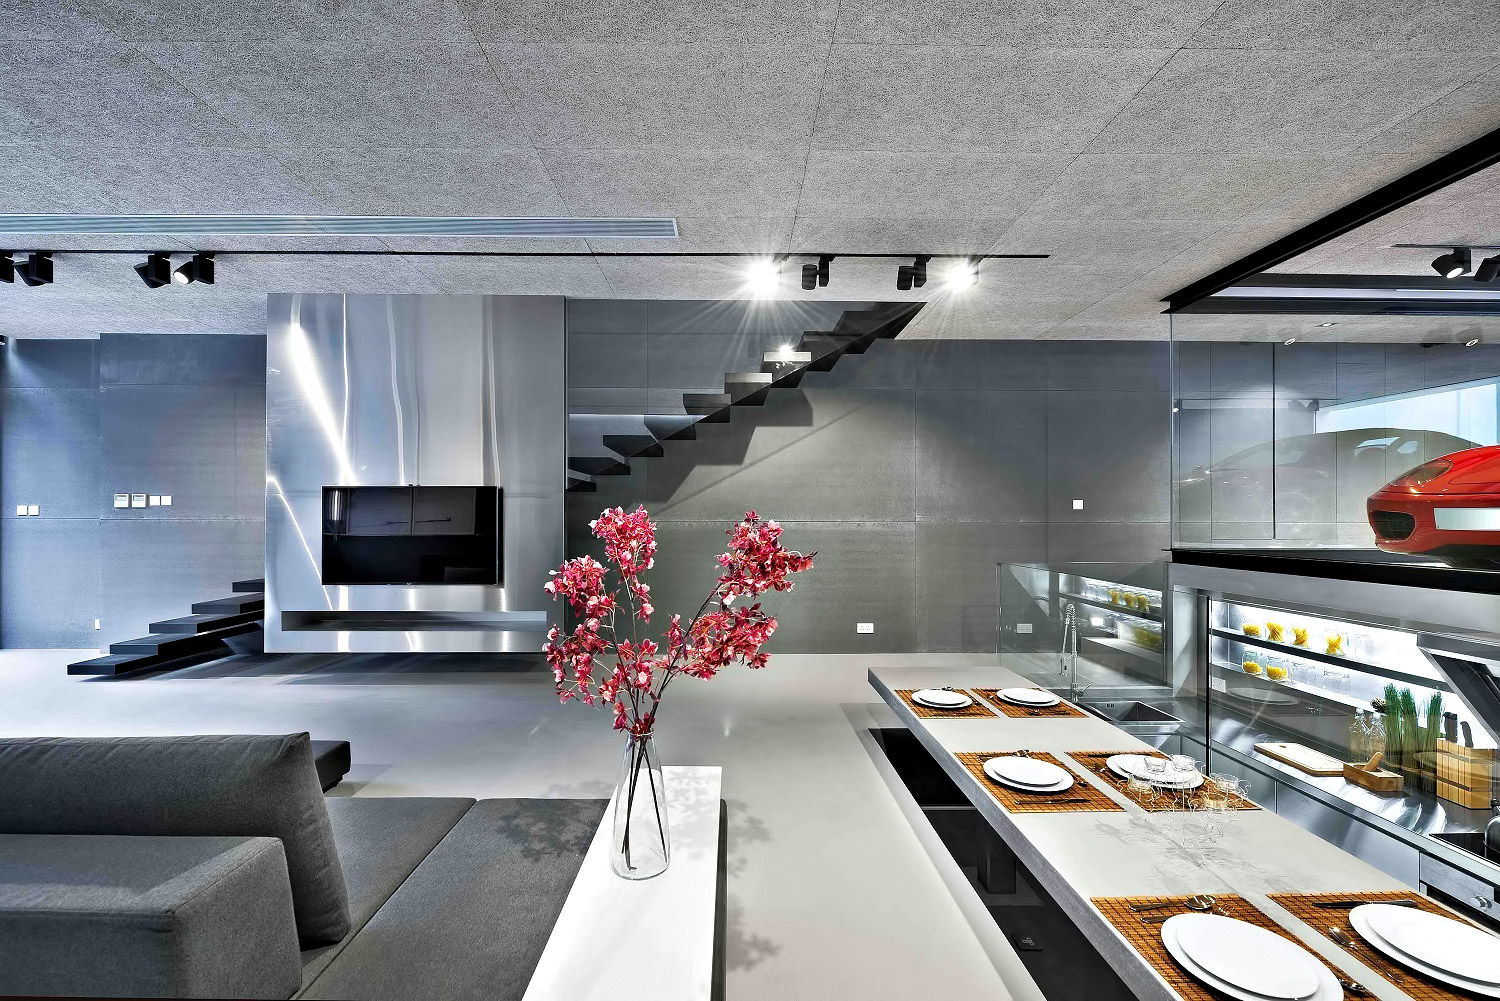 Sai Kung Luxury Residence - New Territories, Hong Kong, China